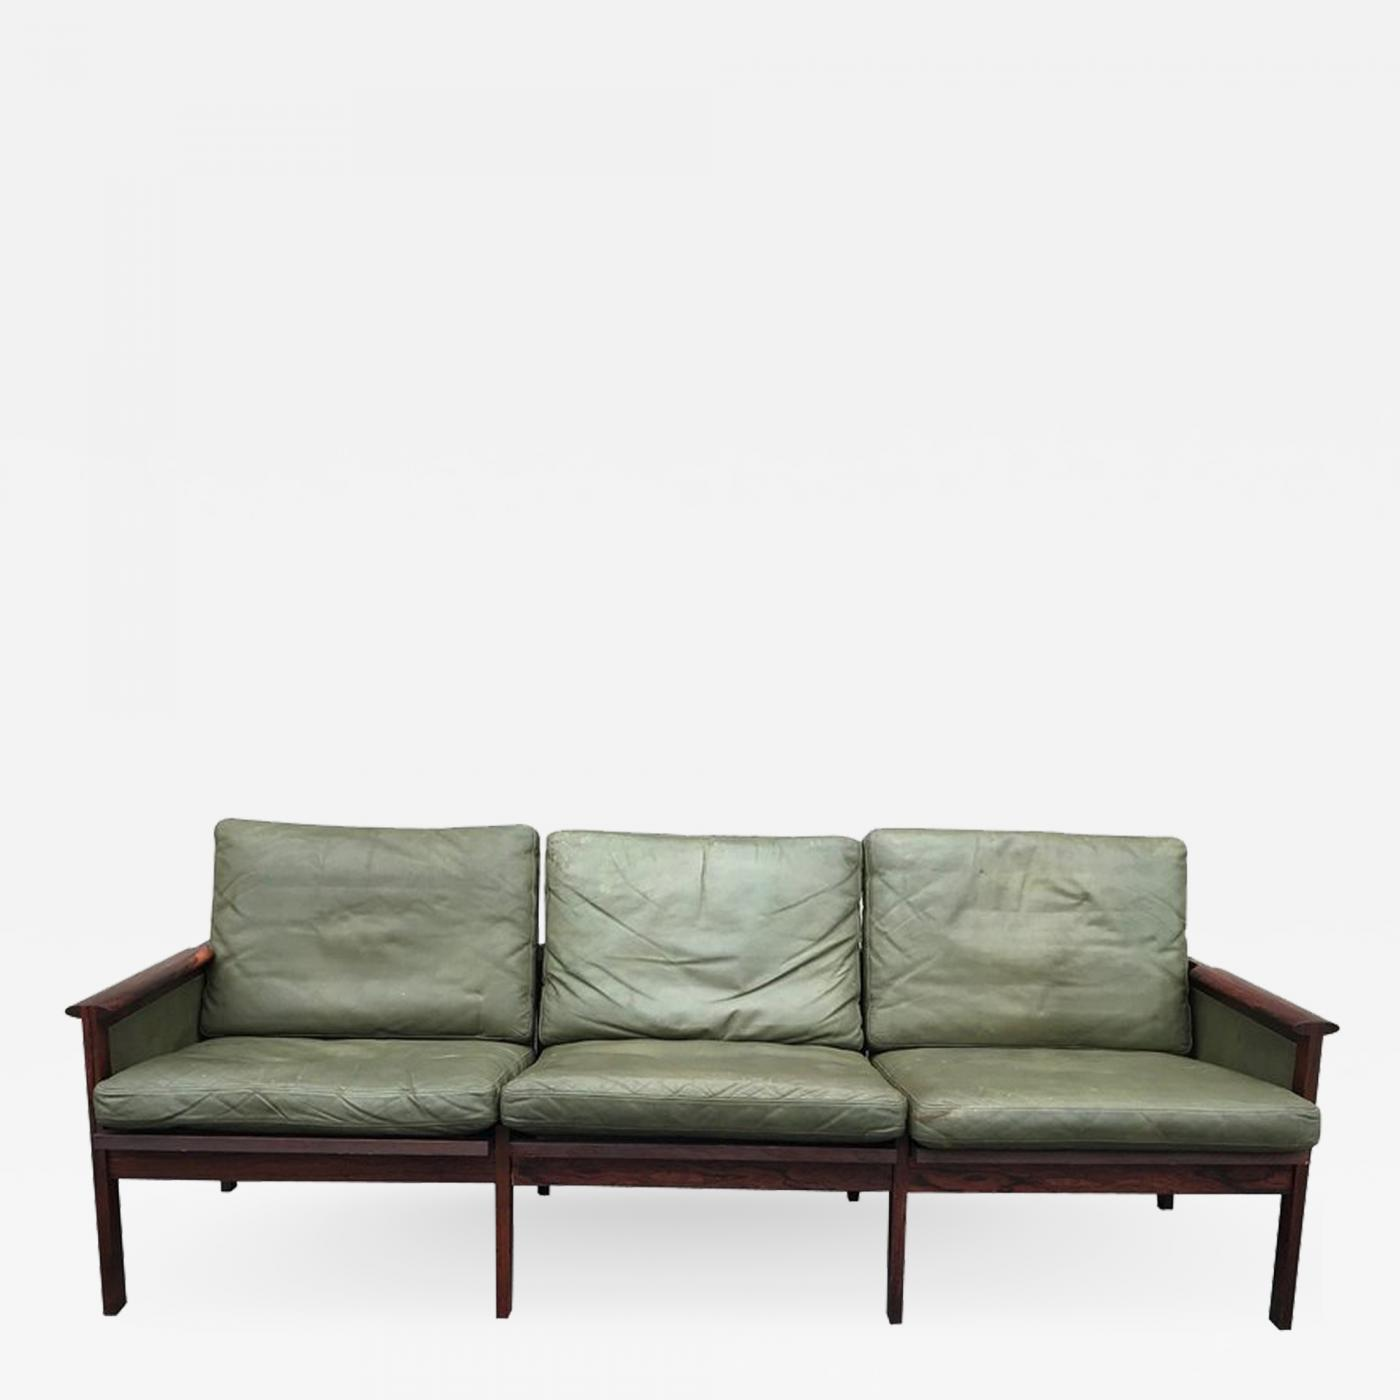 Sofa Vintage A Vendre Illum Wikkelsø Great Leather And Hardwood Sofa By Illum Wikkelso